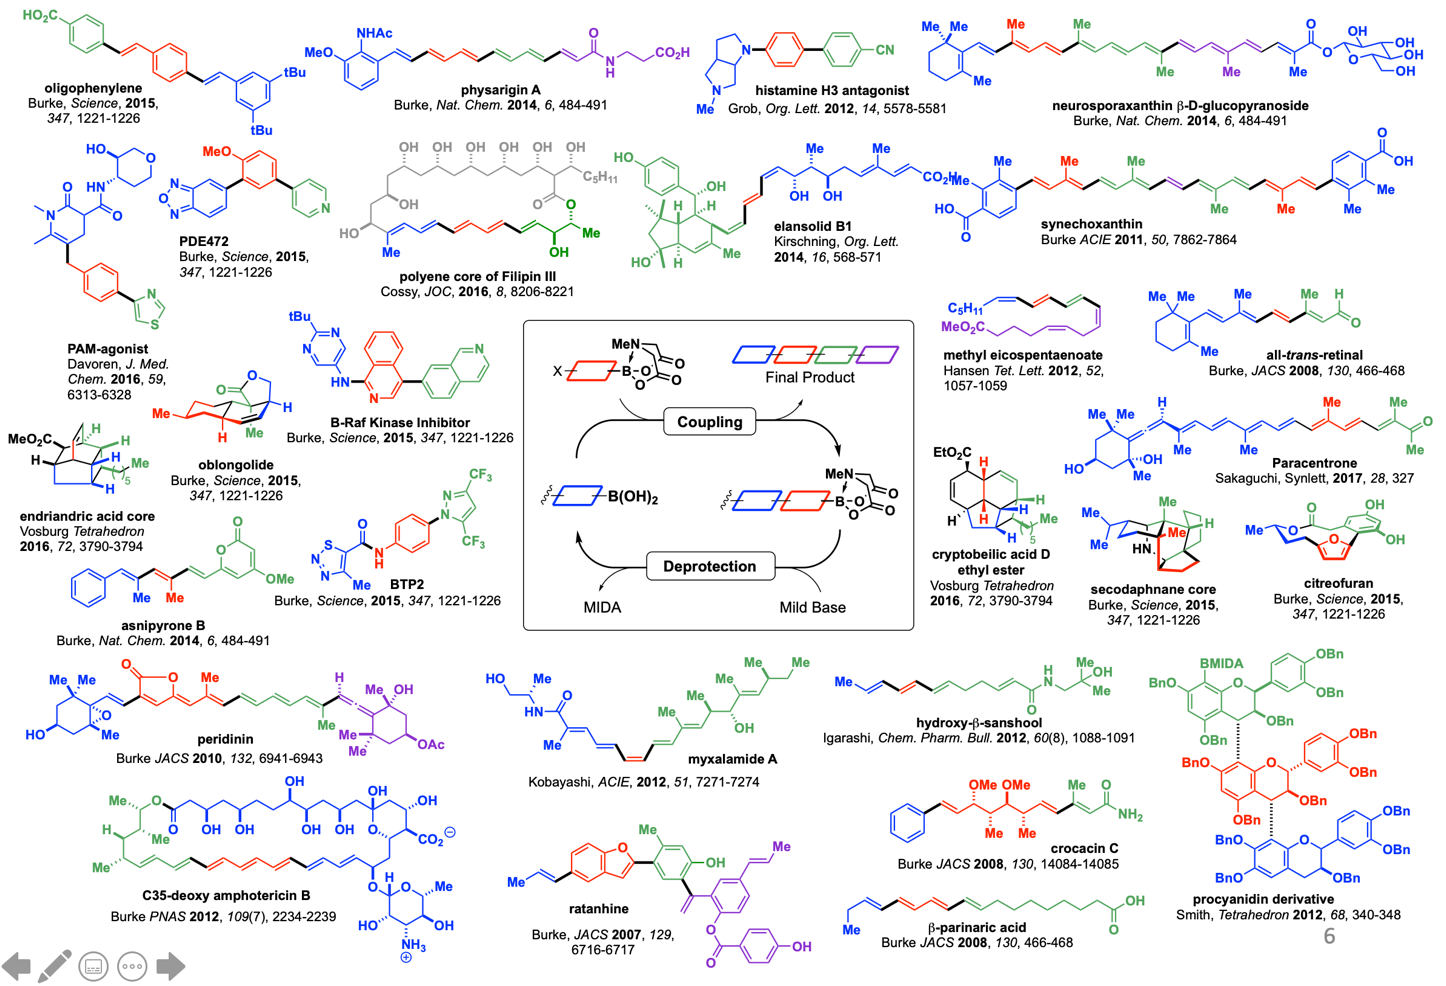 Small molecules synthesized via iterative cross-coupling